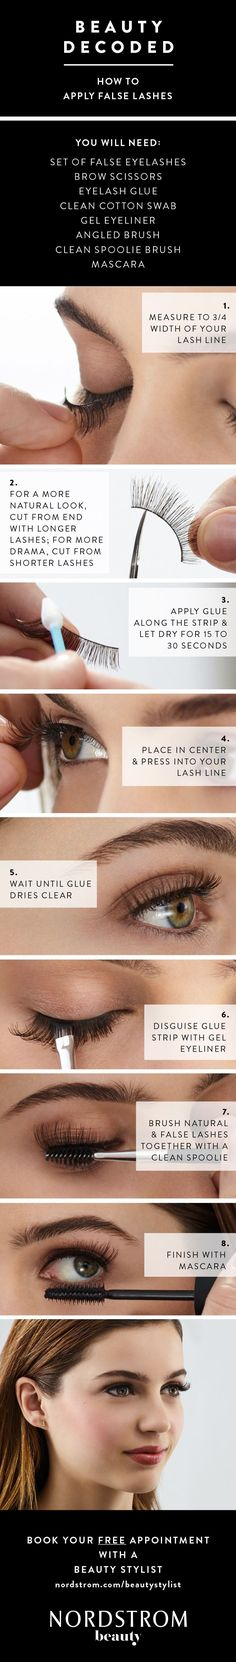 How to apply false lashes in 7 easy steps. Tips from the beauty pros at Nordstrom that will help make you look flawless every time you wear fake eyelashes. Make sure you have a good eyelash glue and let it try for up about 30 seconds before applying. #applyinglashes